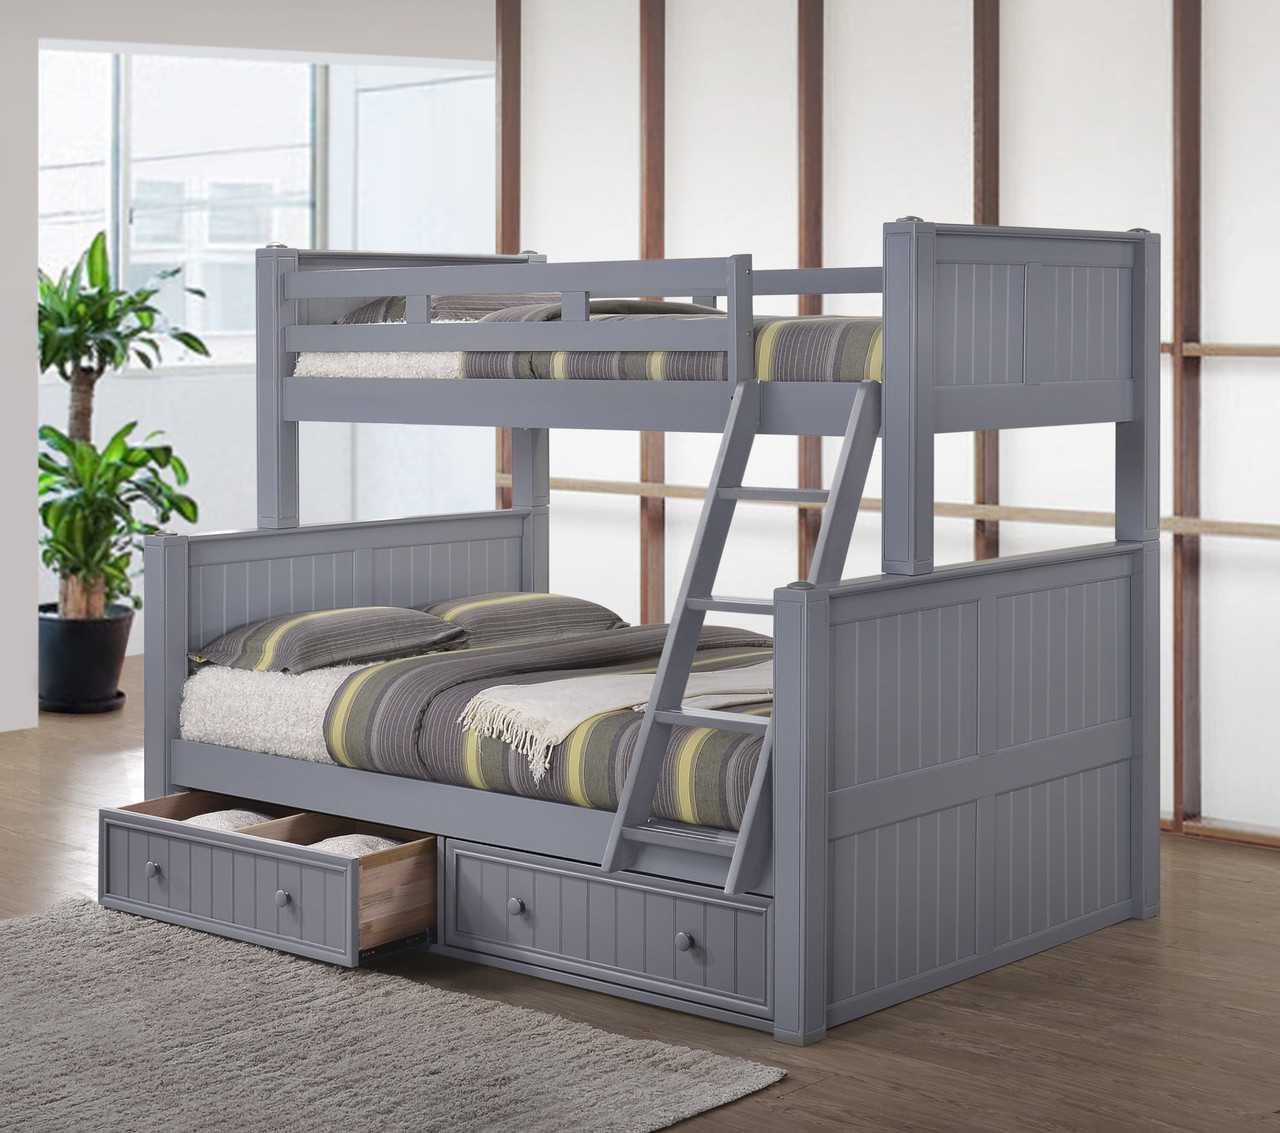 dillon navy blue twin over full bunk bed. Black Bedroom Furniture Sets. Home Design Ideas